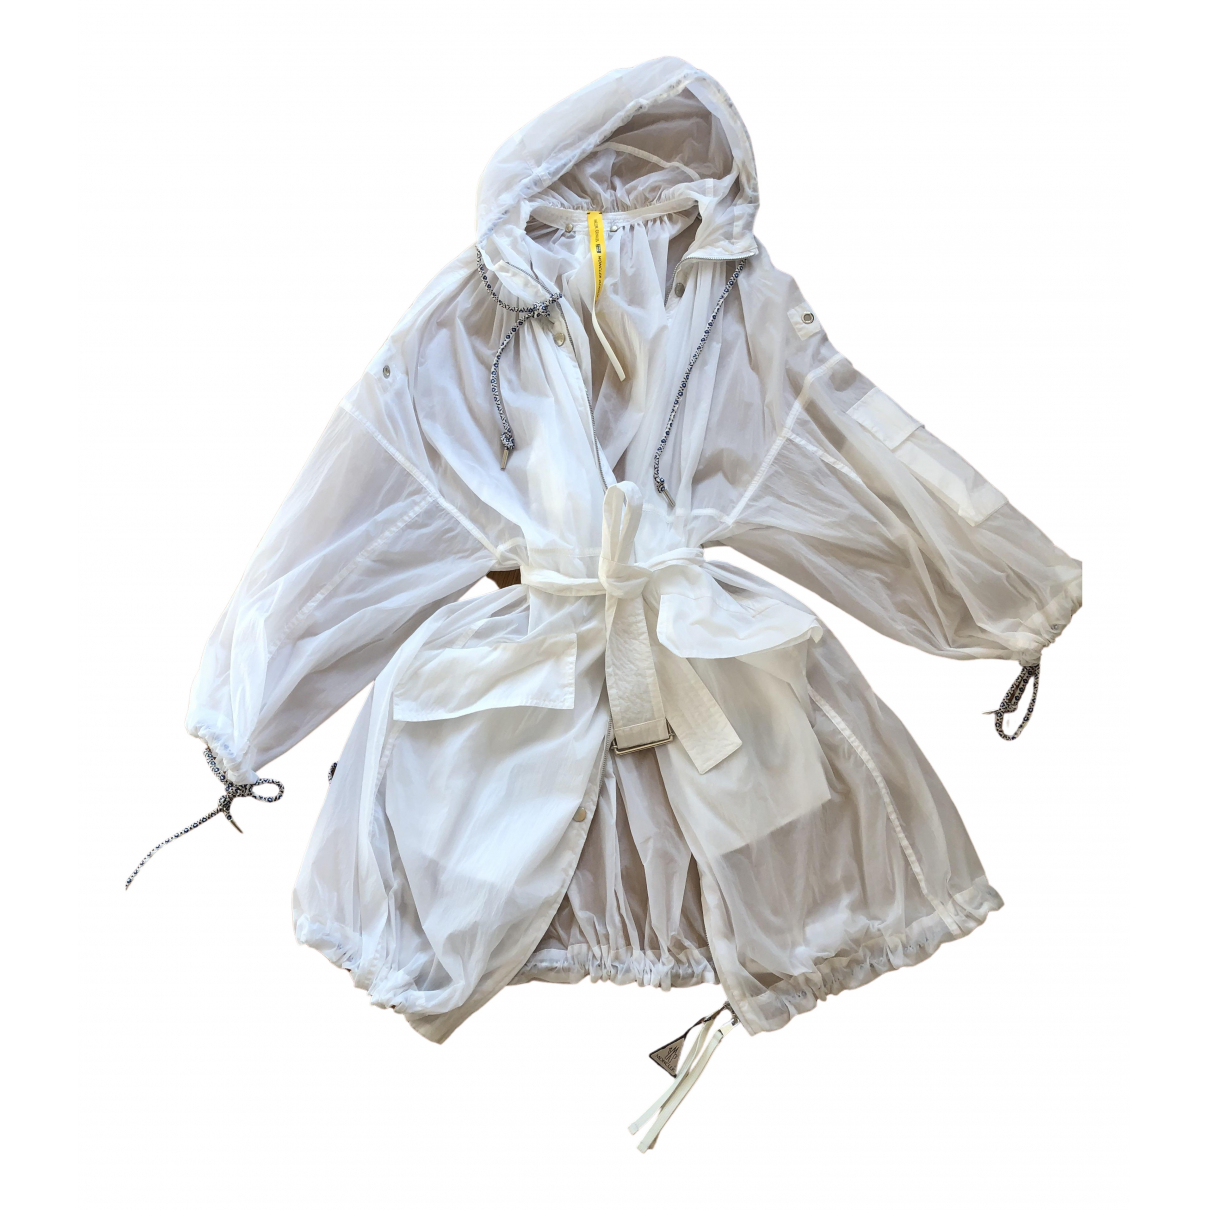 Moncler Genius Moncler n°2 1952 + Valextra Jacke in  Weiss Polyester